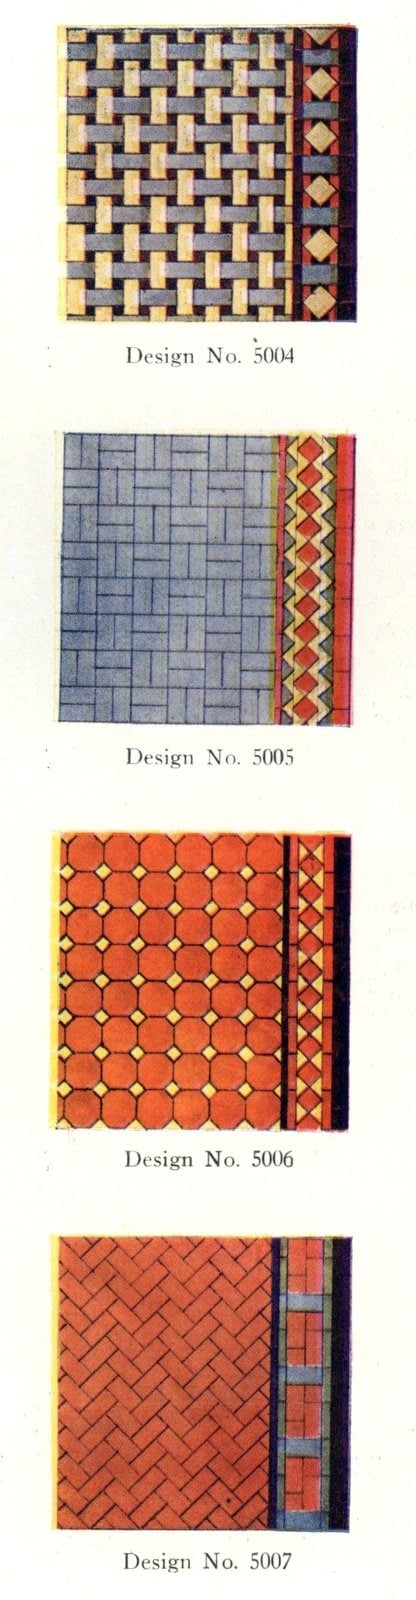 Authentic 20s tile designs and patterns from the home from 1929 at Click Americana (5)